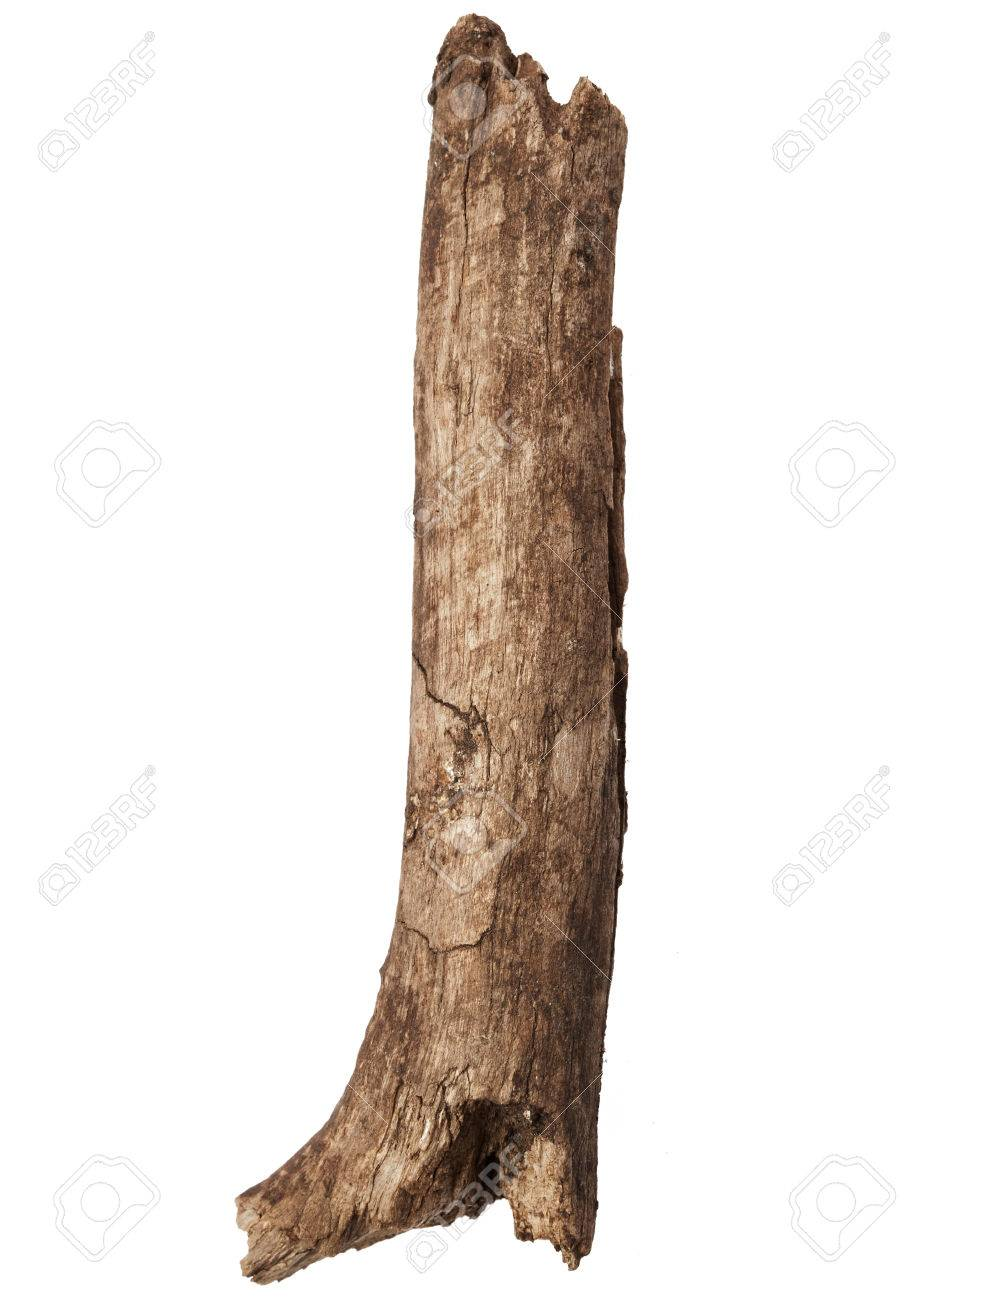 Part of tree trunk isolated on white background - 44241389